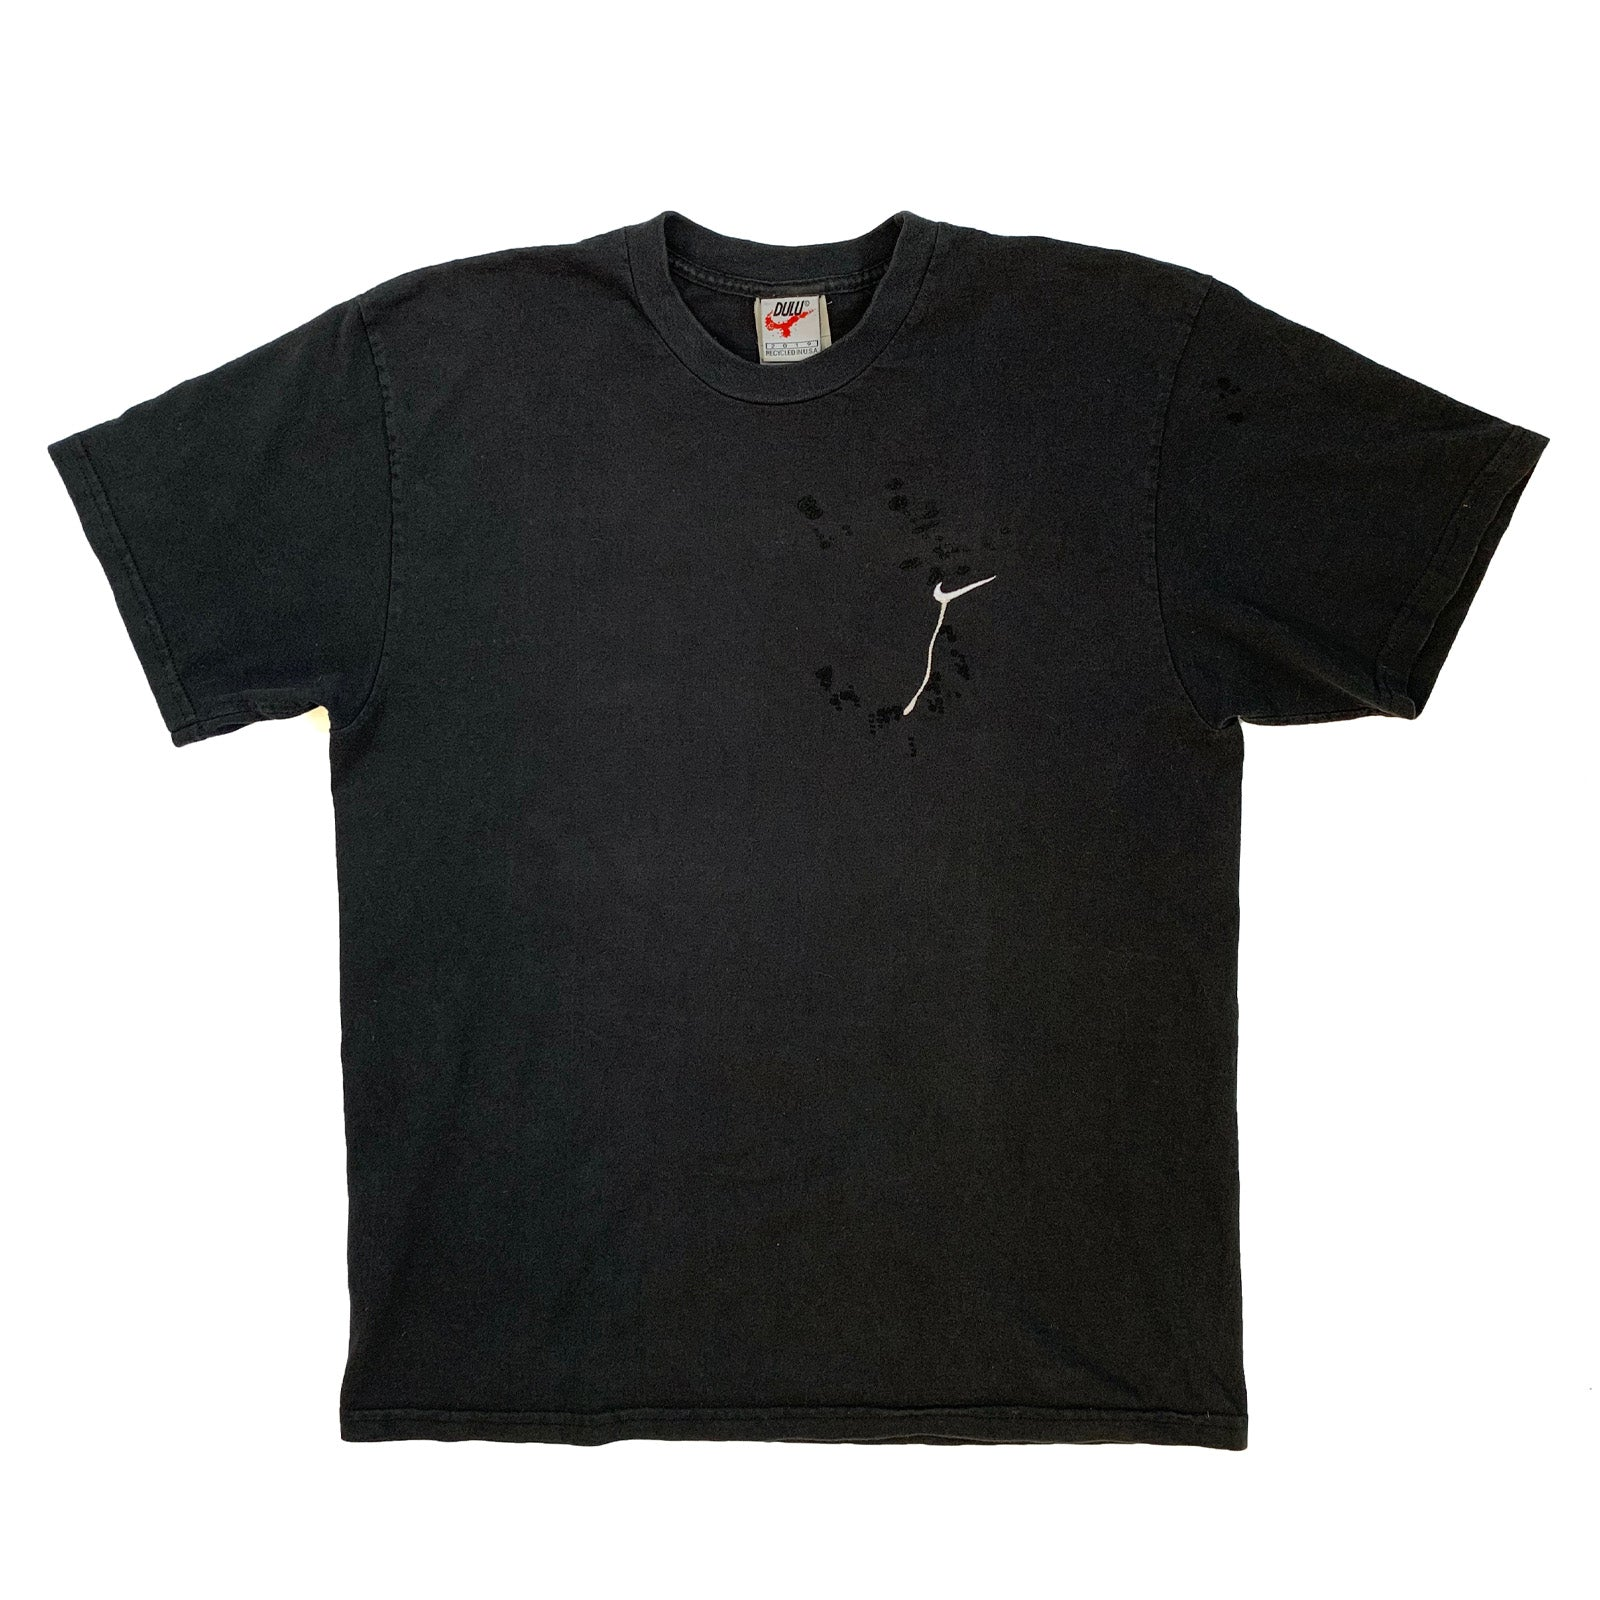 "BANDULU "" MURDERED OUT "" VINTAGE NIKE TEE M"